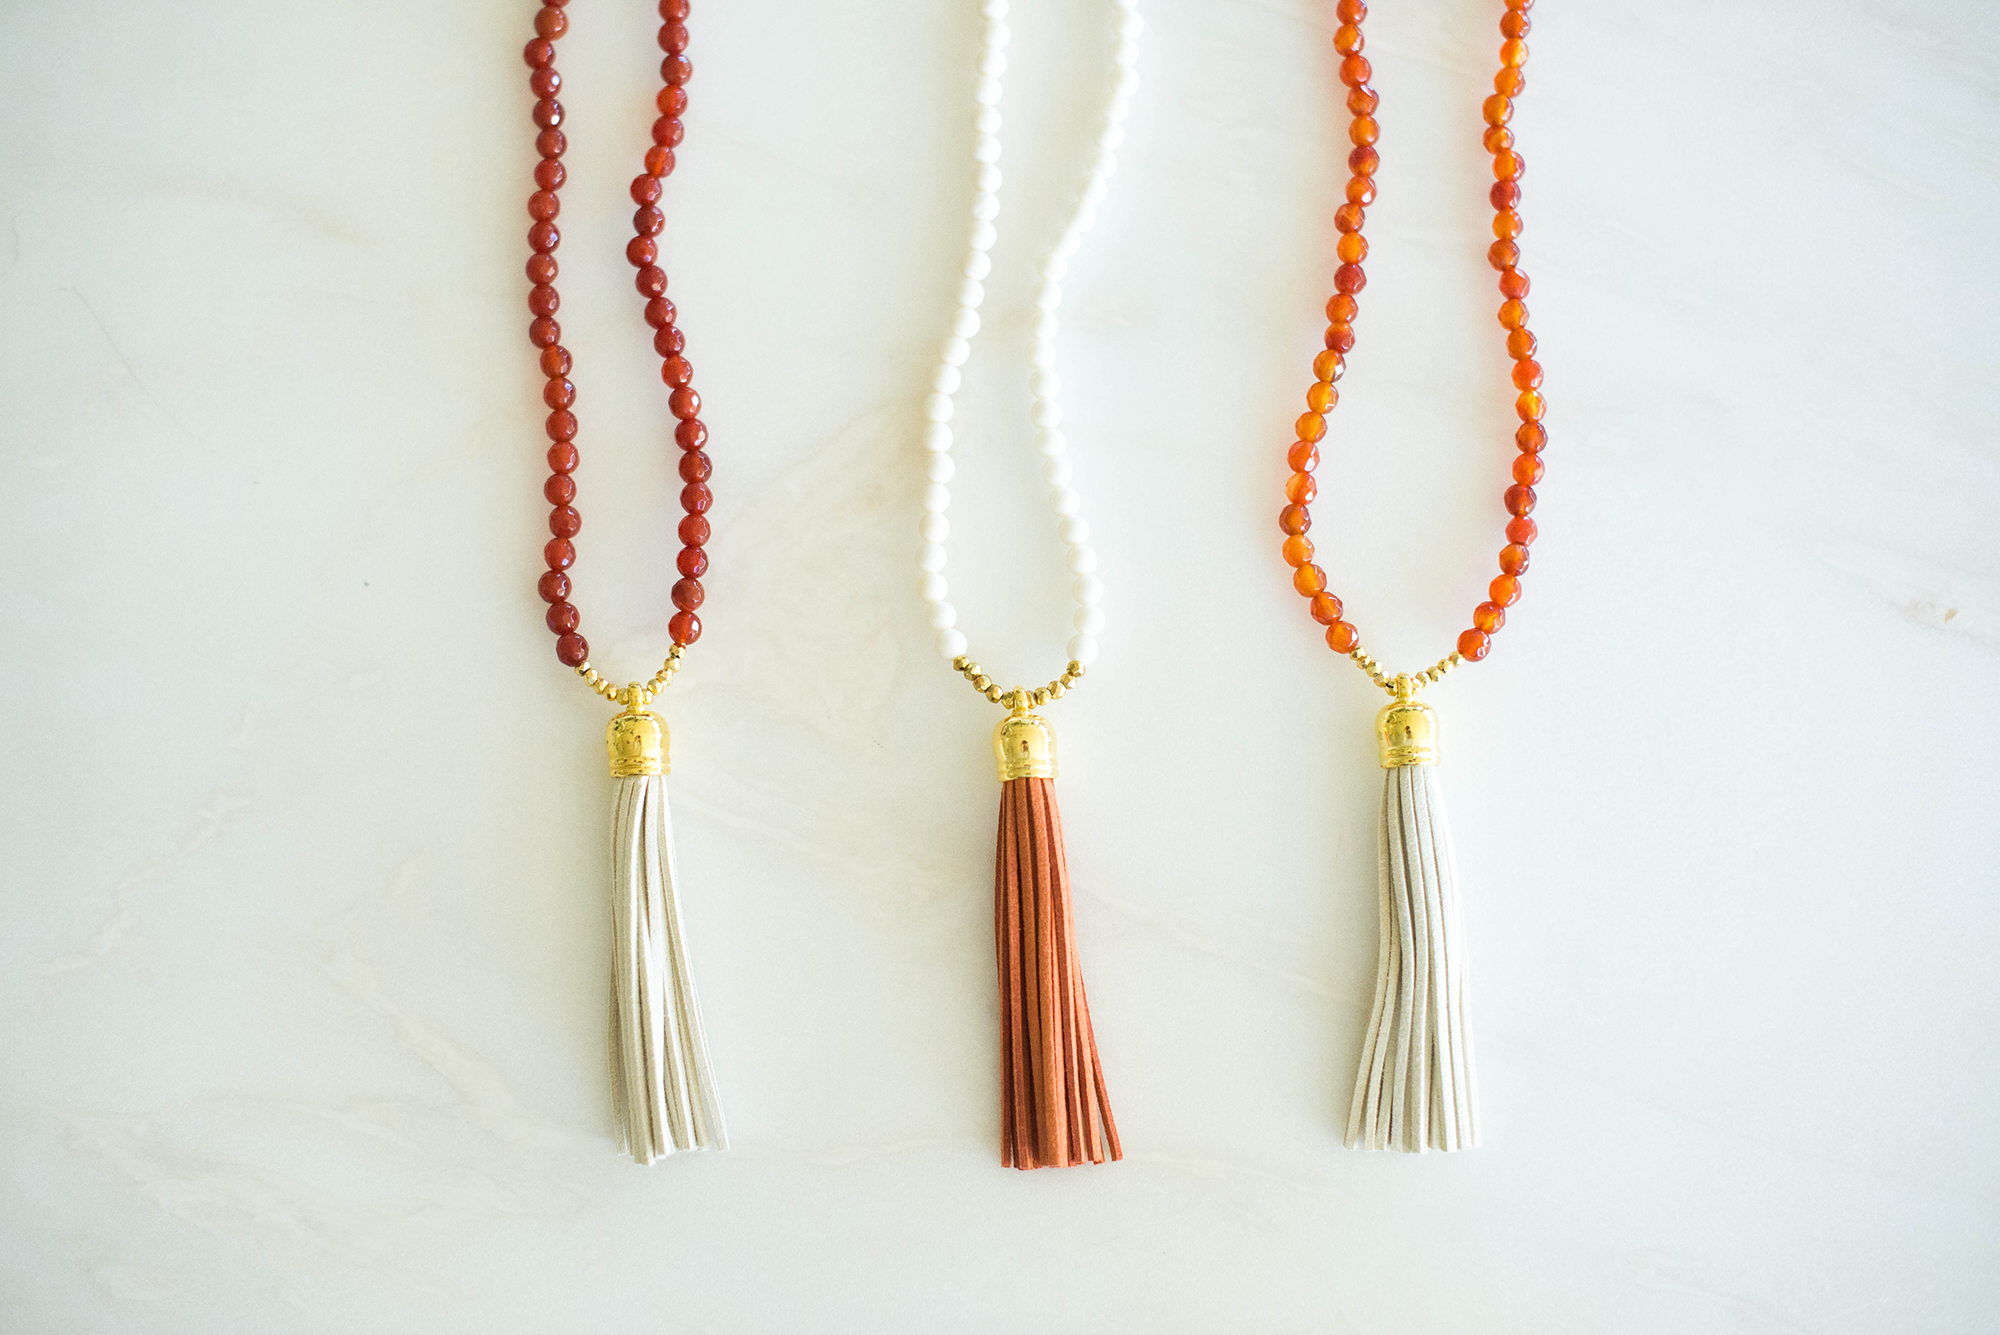 Laura Windsor Tassel Necklaces | The Style Scribe